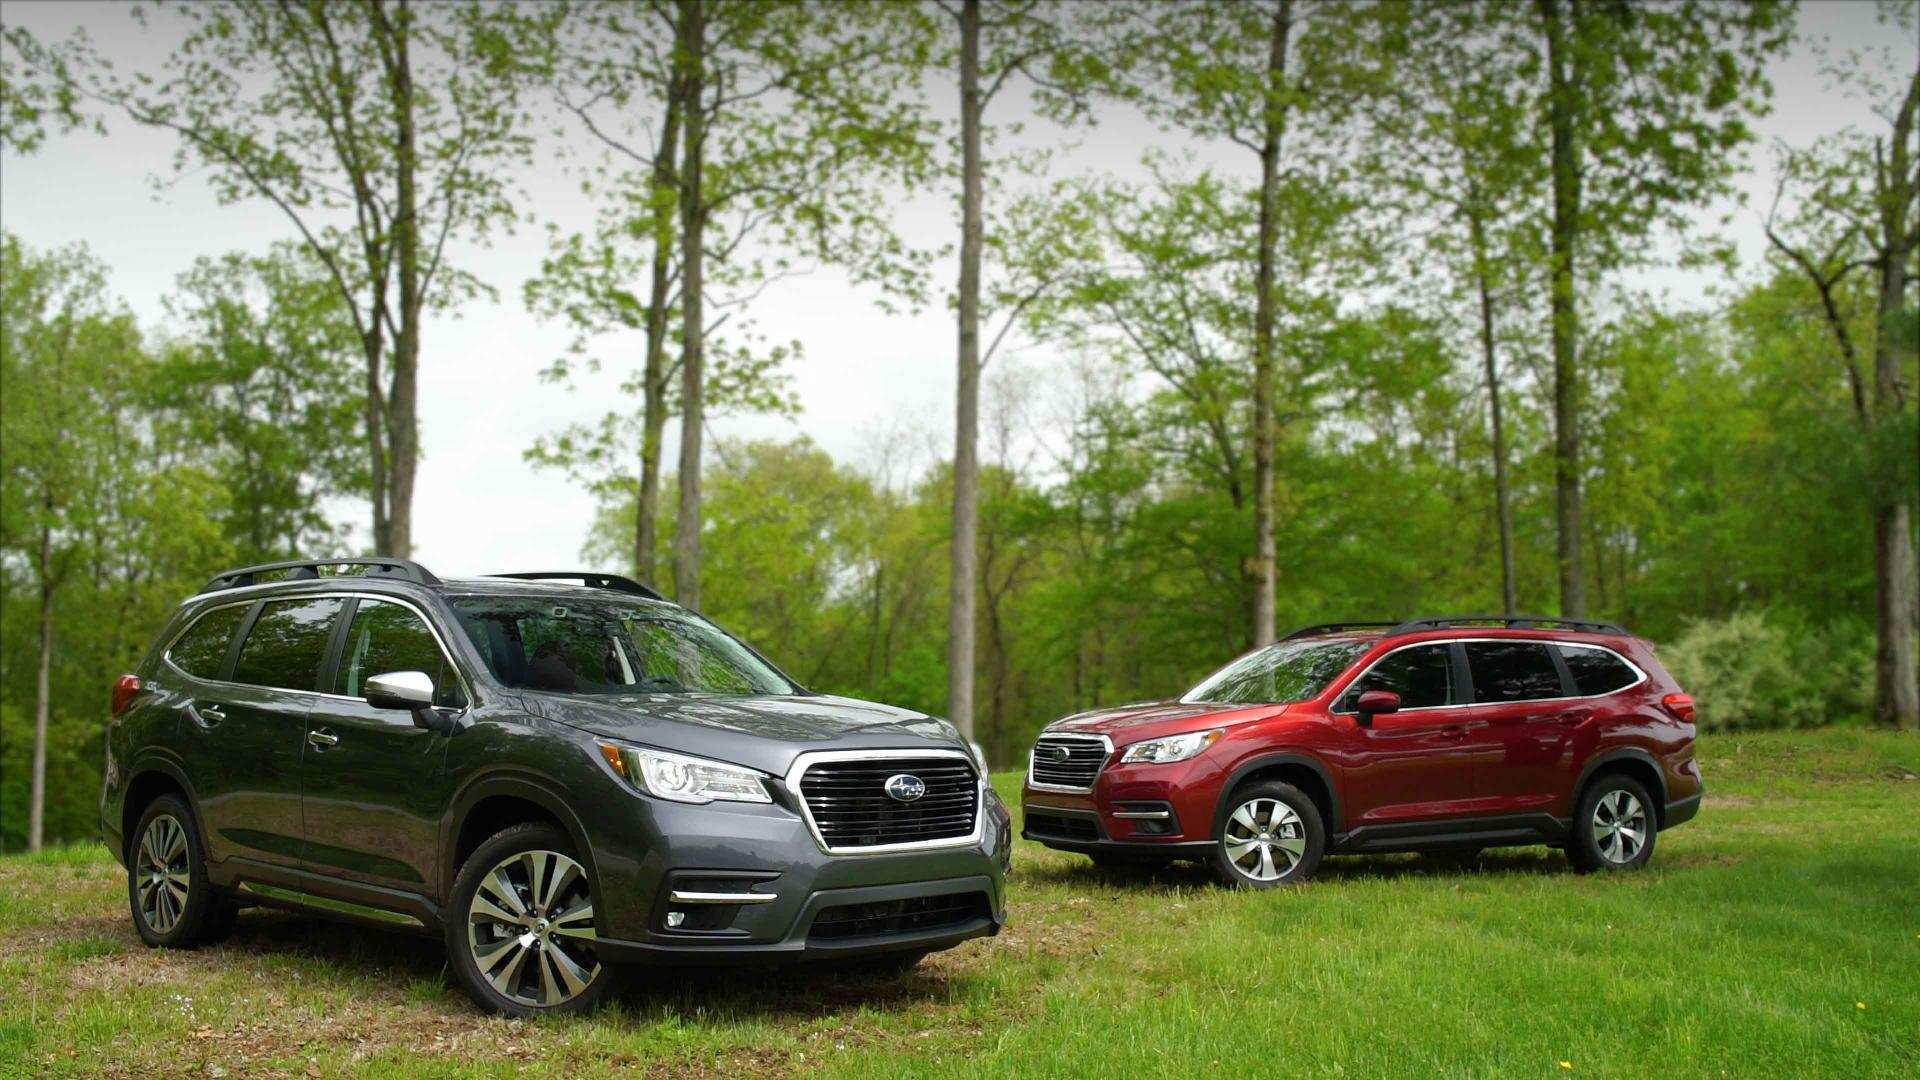 66 Gallery of Best 2019 Subaru Ascent Release Date Usa Specs Specs and Review for Best 2019 Subaru Ascent Release Date Usa Specs